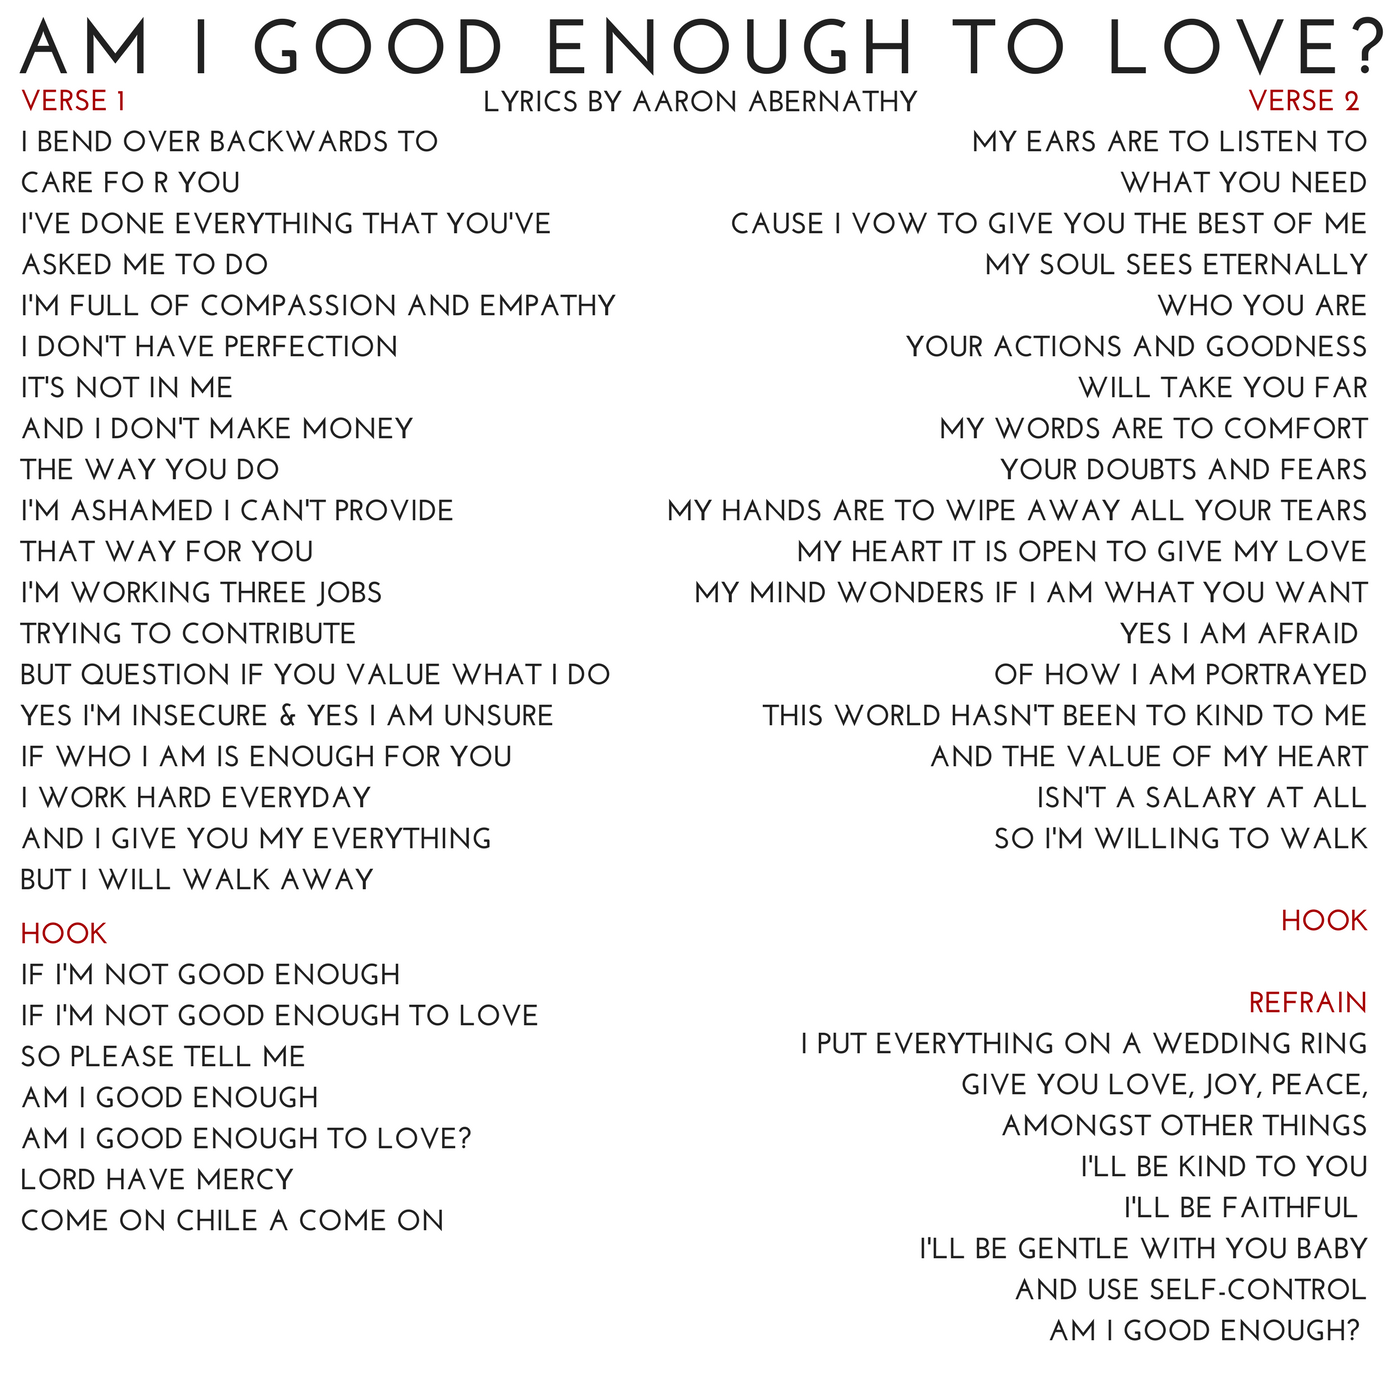 05 AM I GOOD ENOUGH TO LOVE Lyrics by AAron Abernathy.png